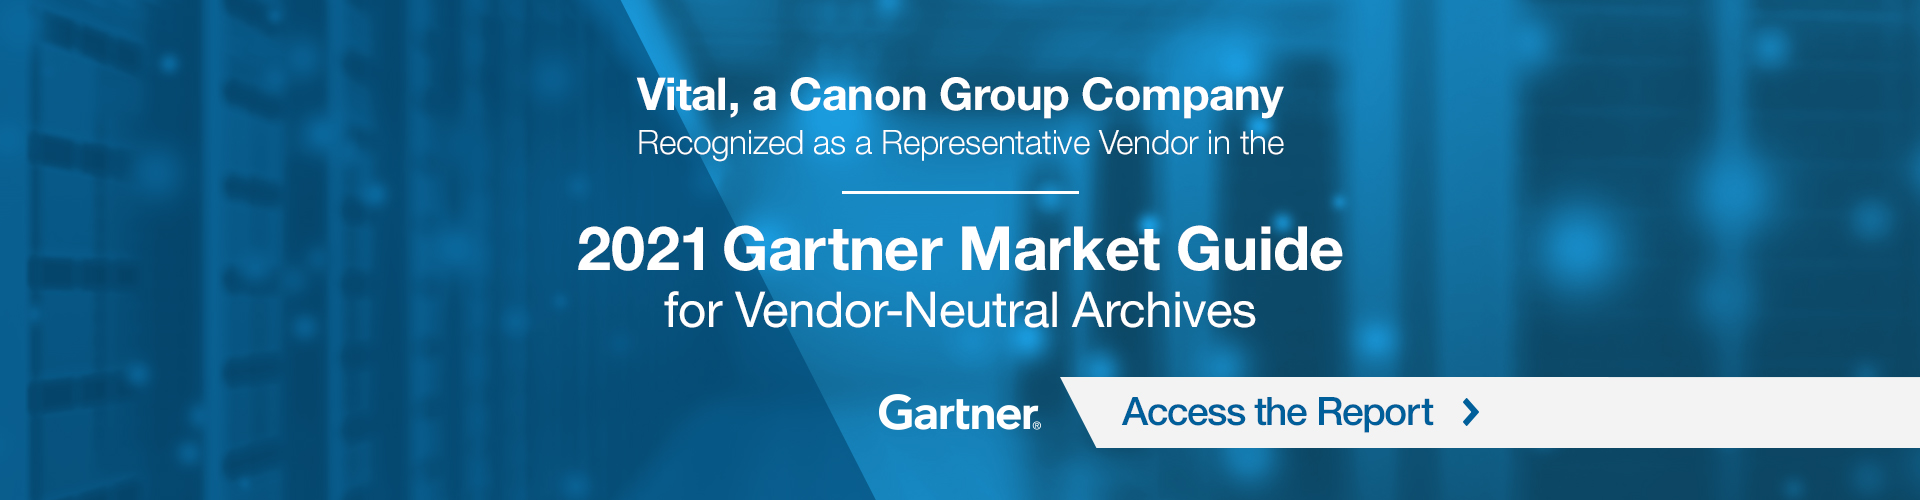 2021 Gartner Market Guide promotional banner.